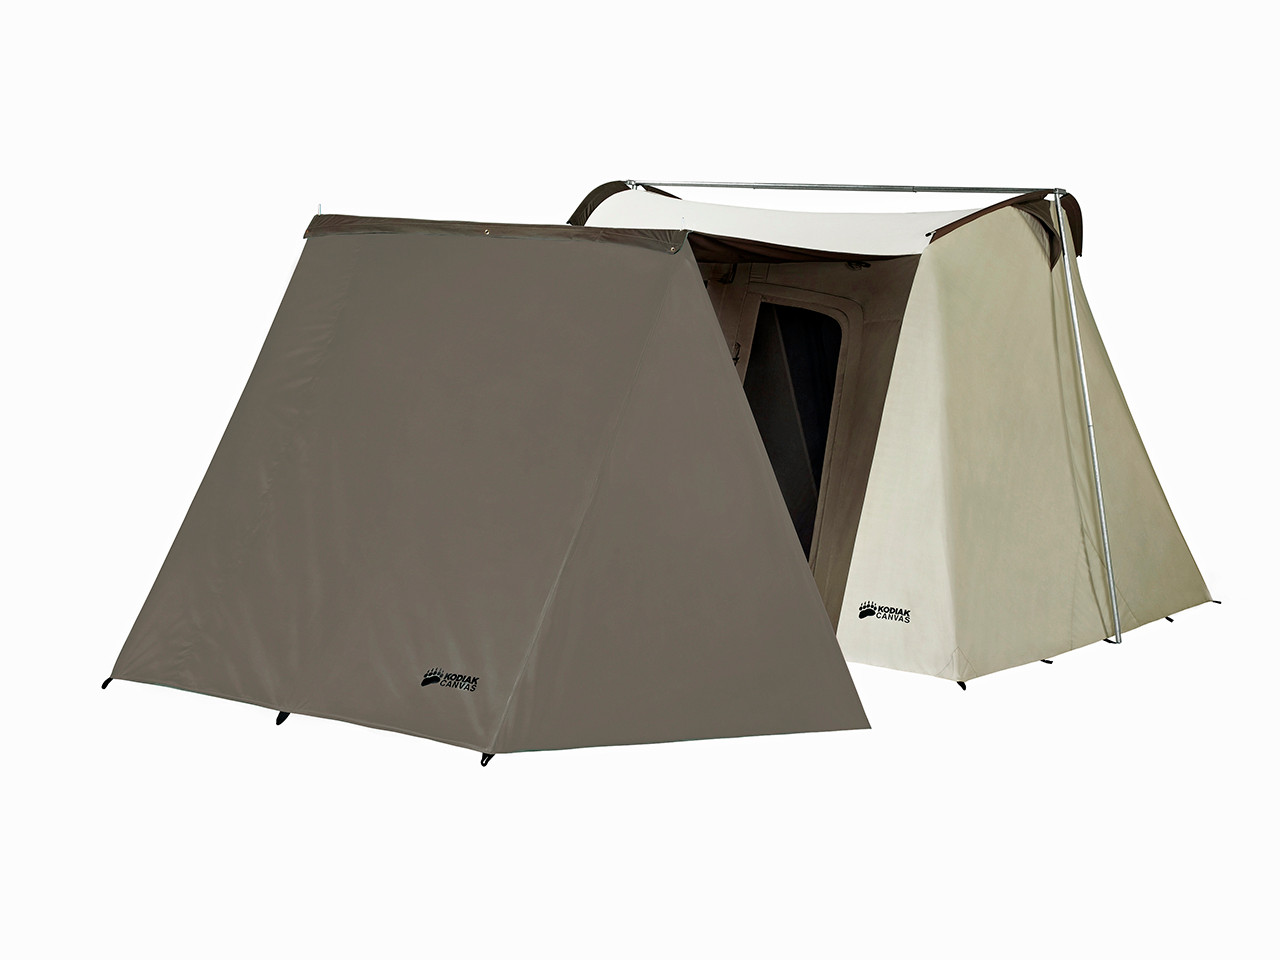 Canvas Wing Vestibule Accessory for 10x14 Flex-bow tent